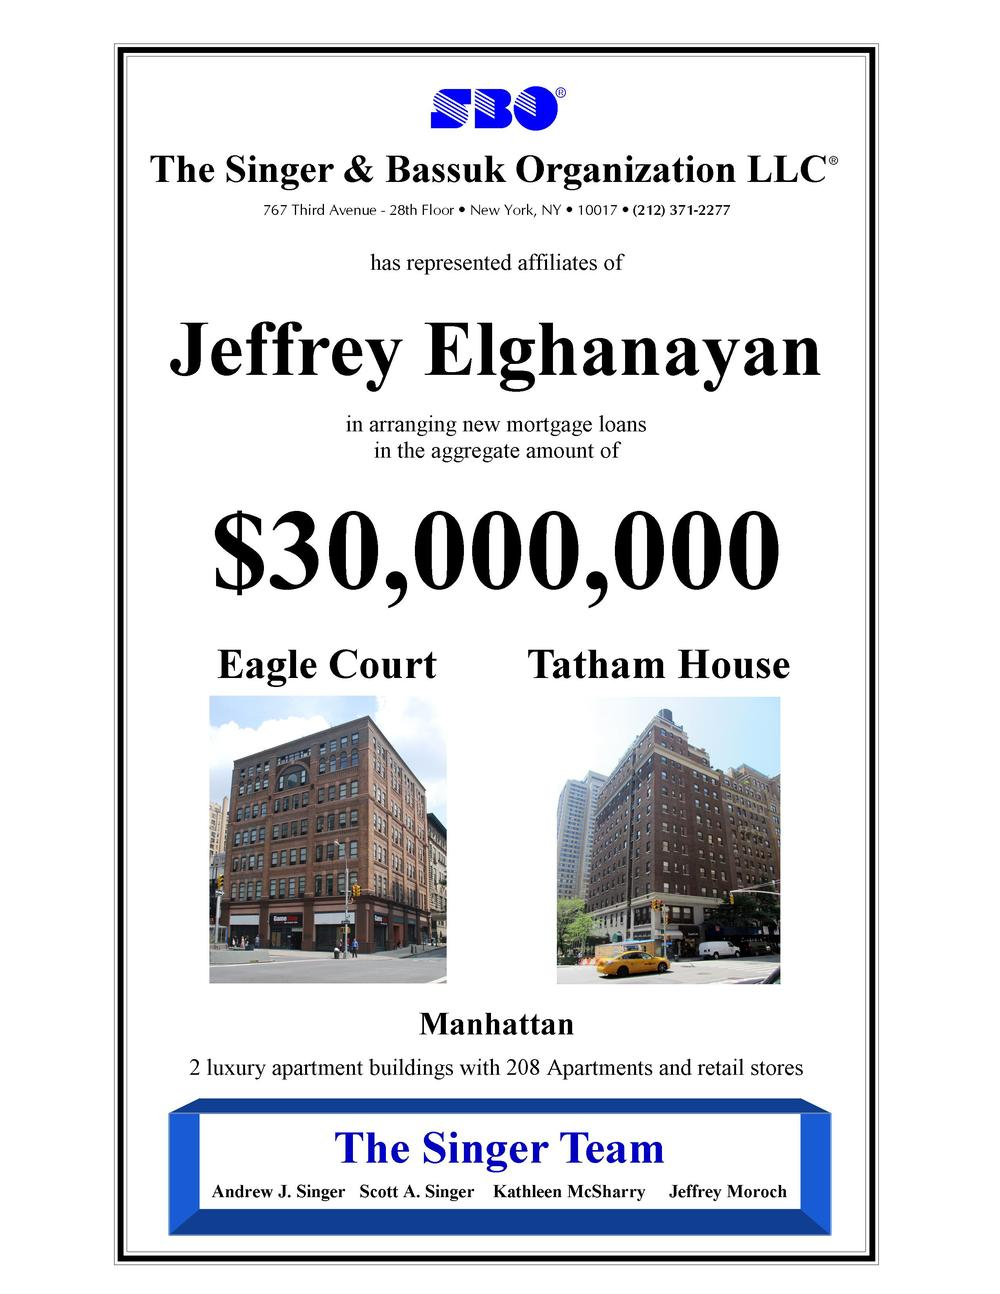 Elghanayan Jeff refi 2012 FINAL (2).jpg